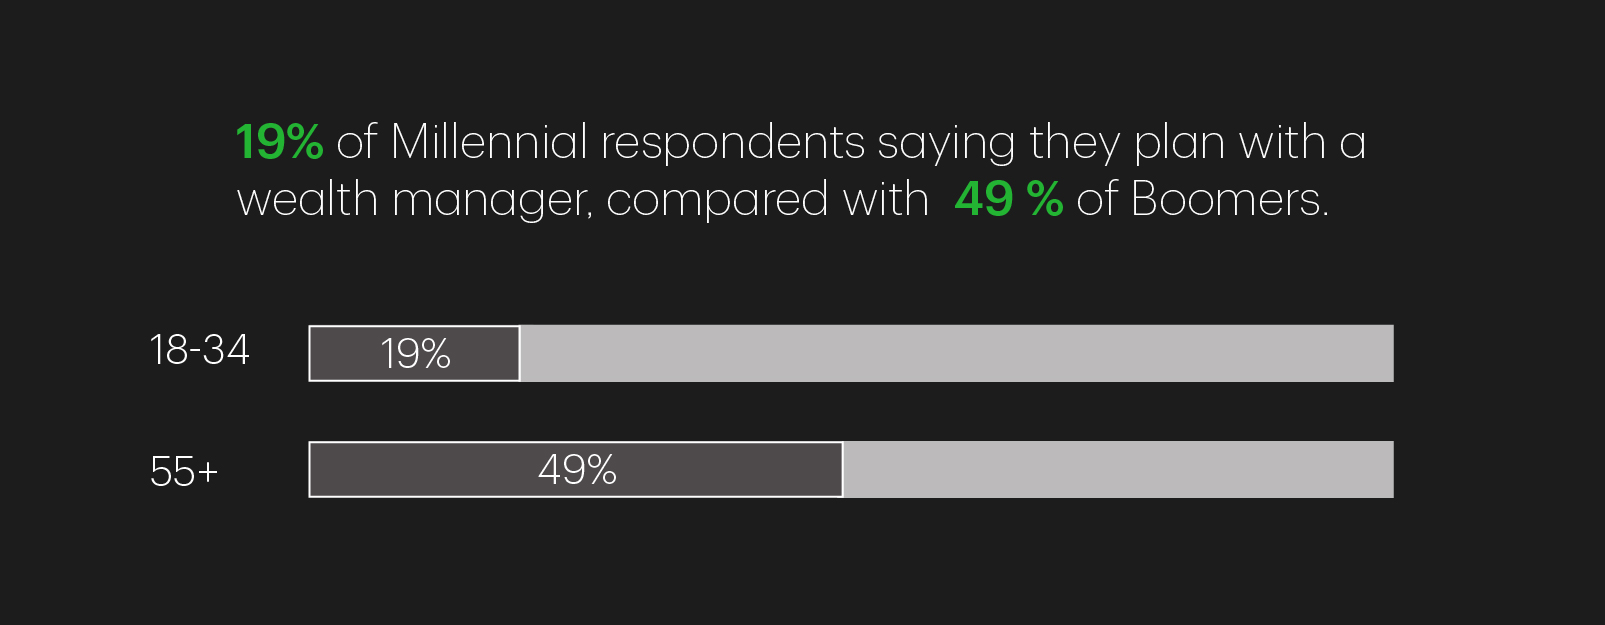 Graphic showing 19% of Millennial respondents saying they plan with a wealth manager, compared with 49% of Boomers